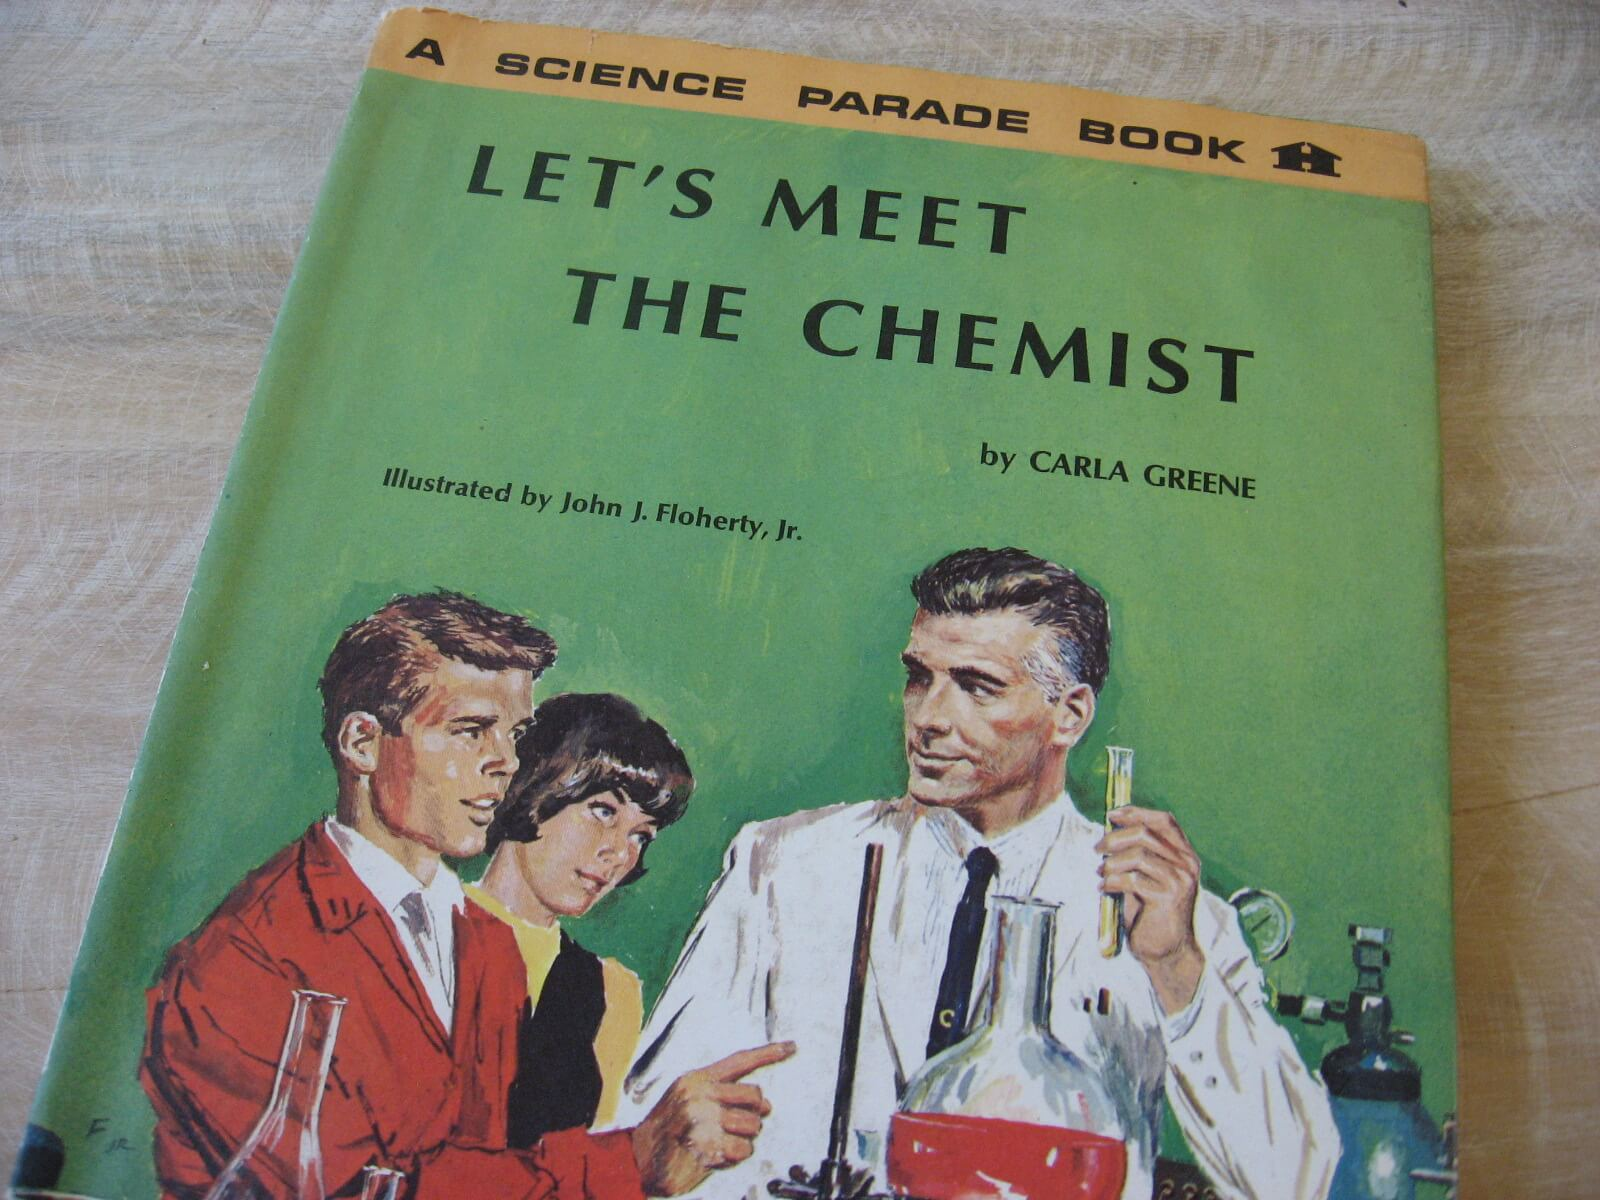 1966 Les Meet the Chemist Carla Greene Science Parade vintage book retro iullstrations ephemera_A_PumpjackPiddlewick